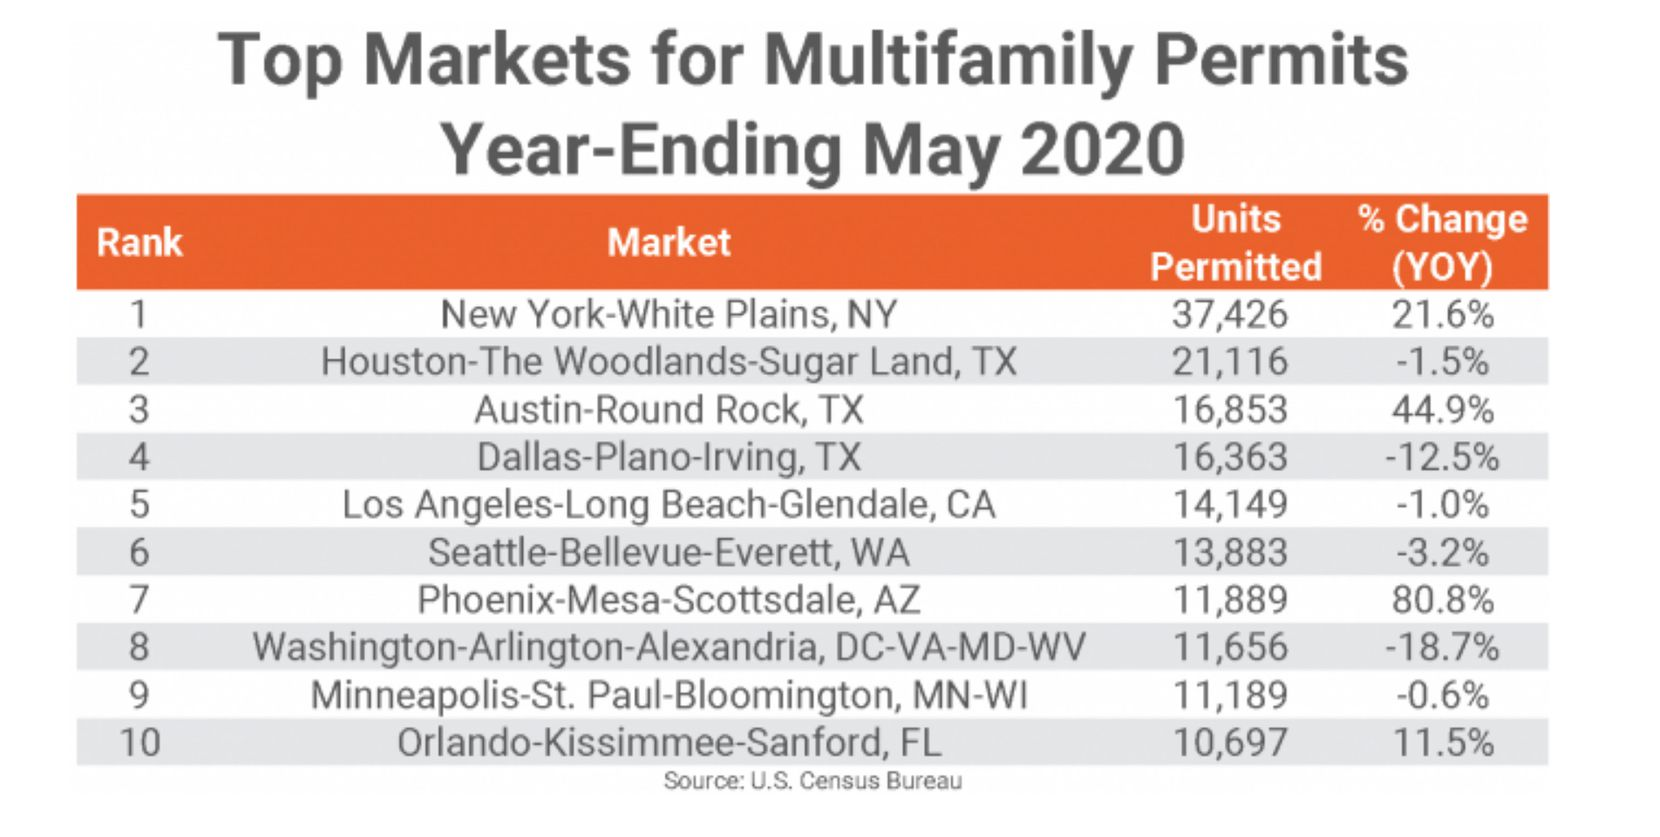 Building permits are down in more than half the major markets.